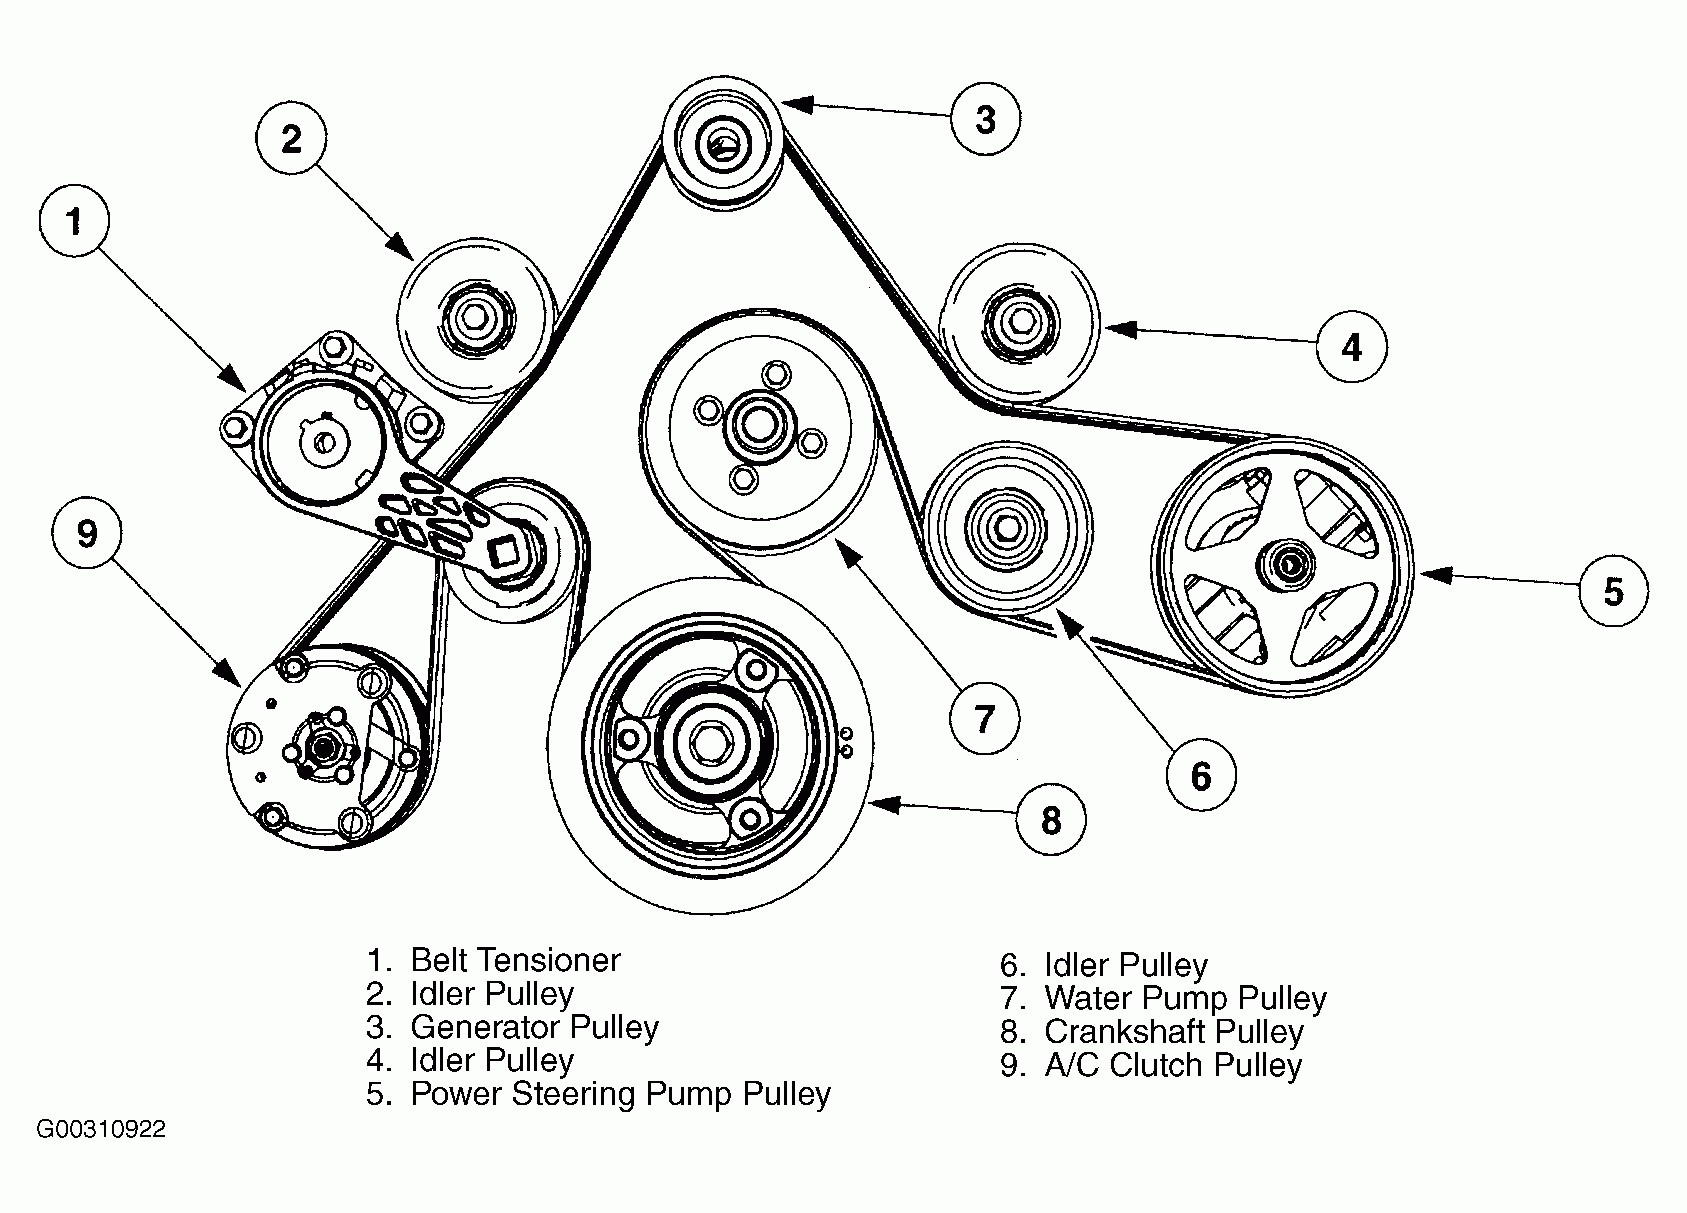 96 jeep cherokee 5 2 engine diagram